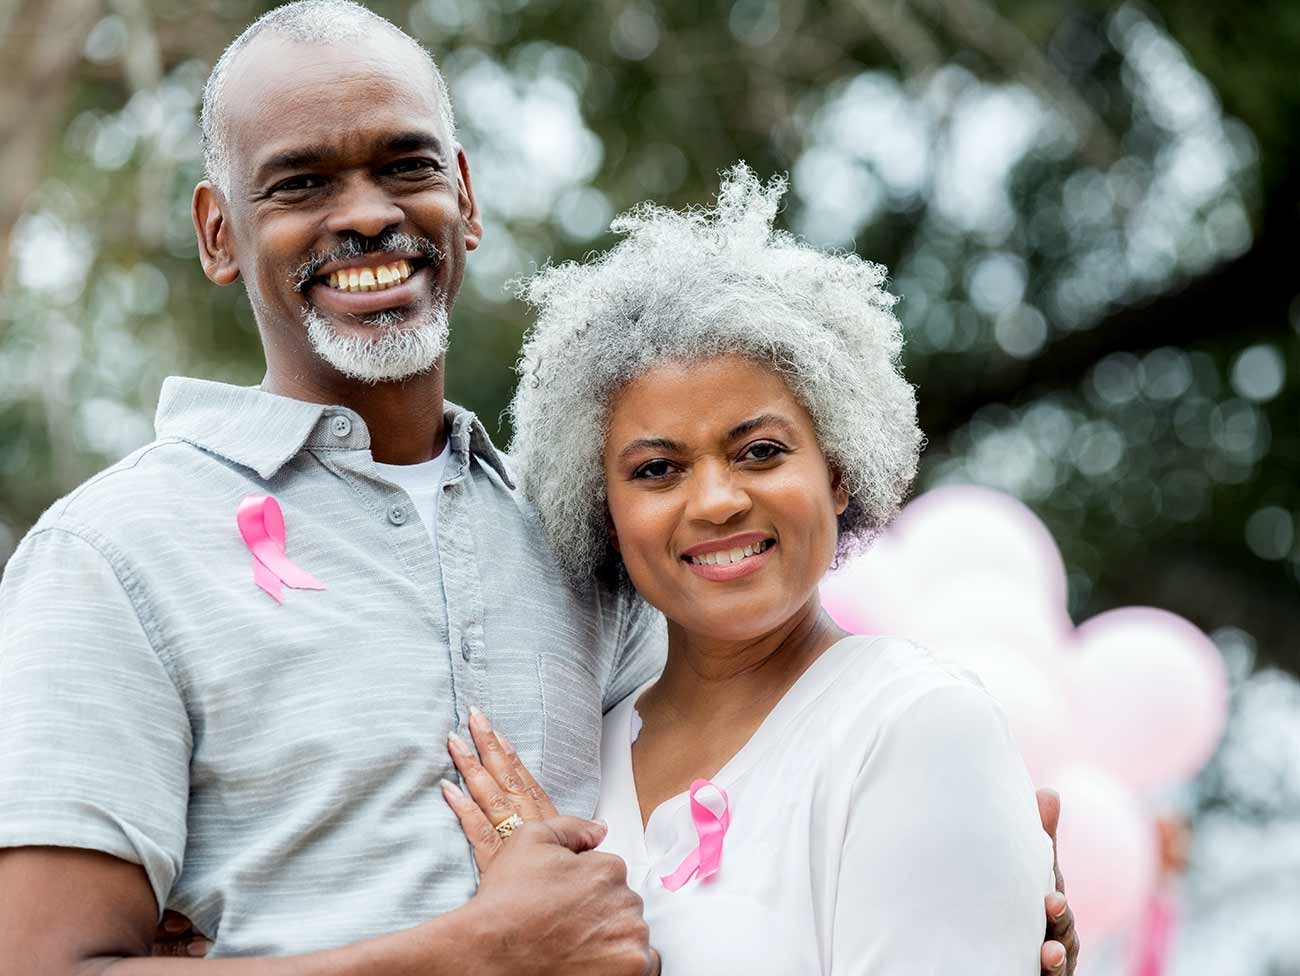 Smiling senior man and woman, both are wearing pink breast cancer awareness ribbons.